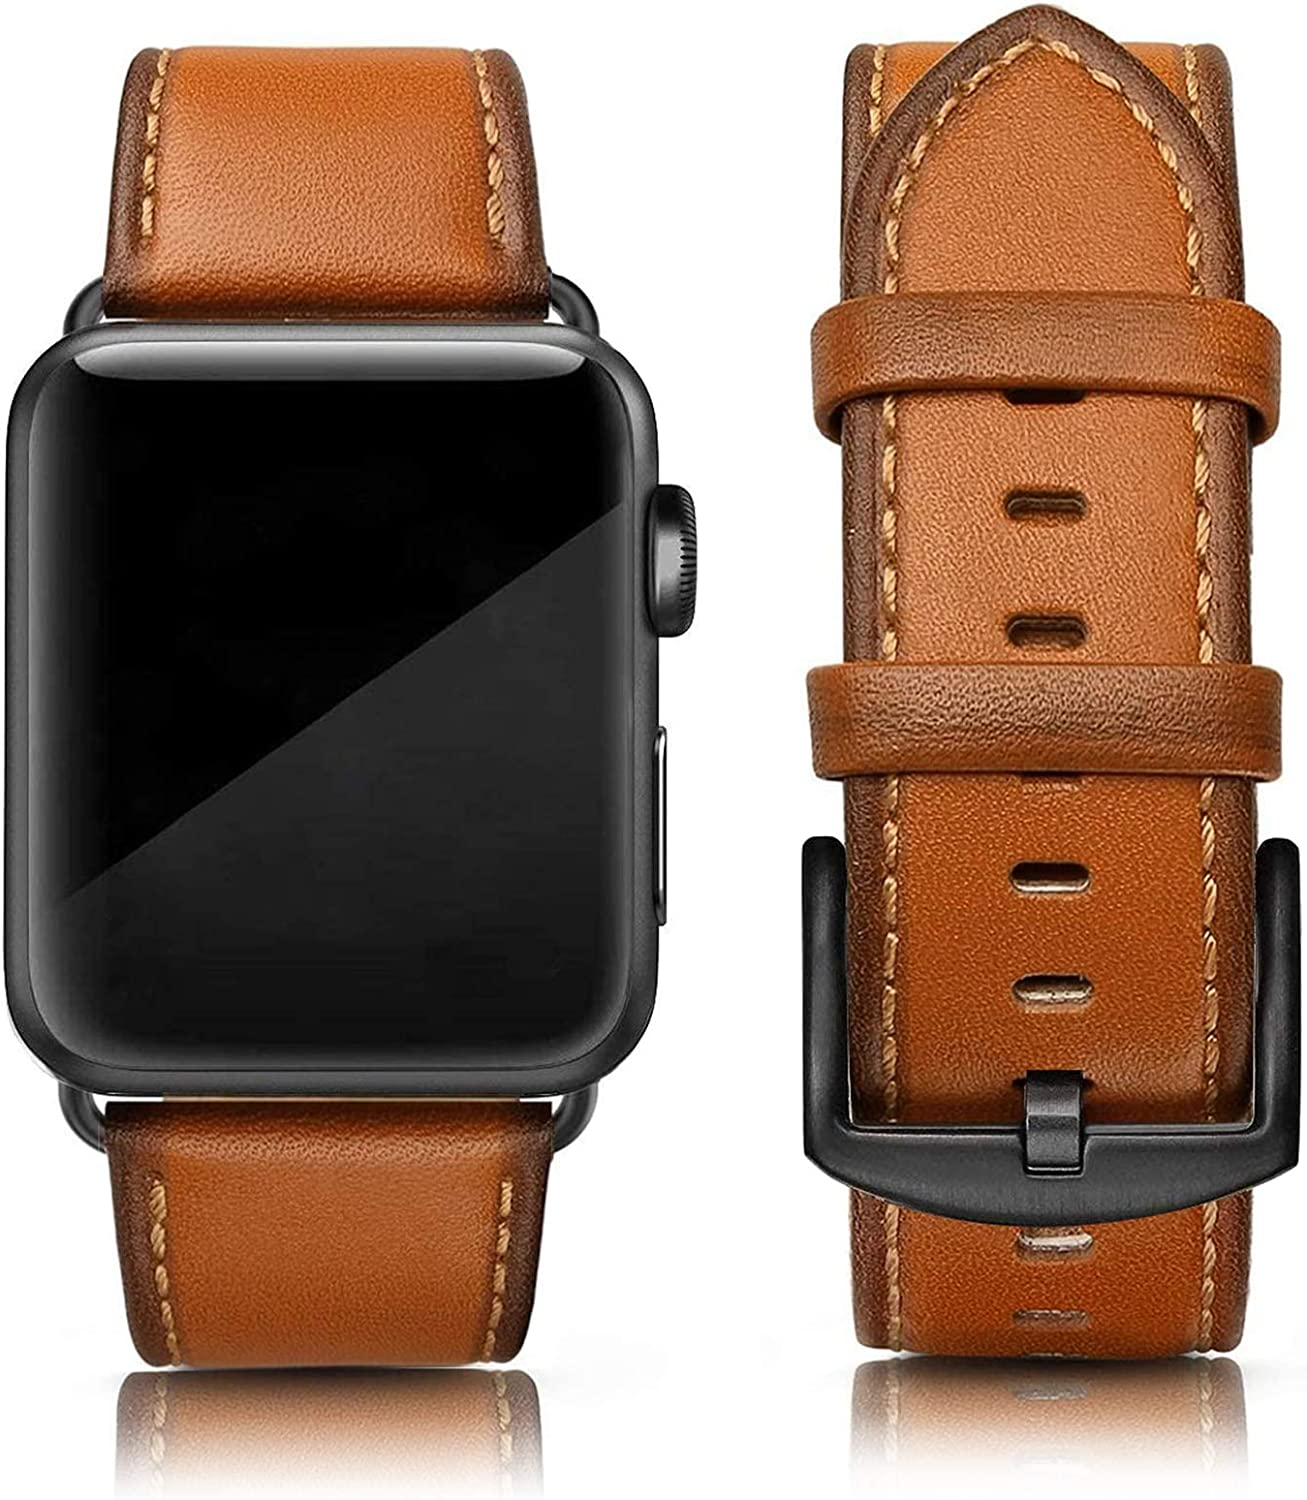 SWEES Leather Band Compatible for iWatch 42mm 44mm, Genuine Leather Replacement Wristband Strap Compatible iWatch Series 6, Series 5, Series 4, Series 3, Series 2, Series 1, SE Sports & Edition Men, Orange